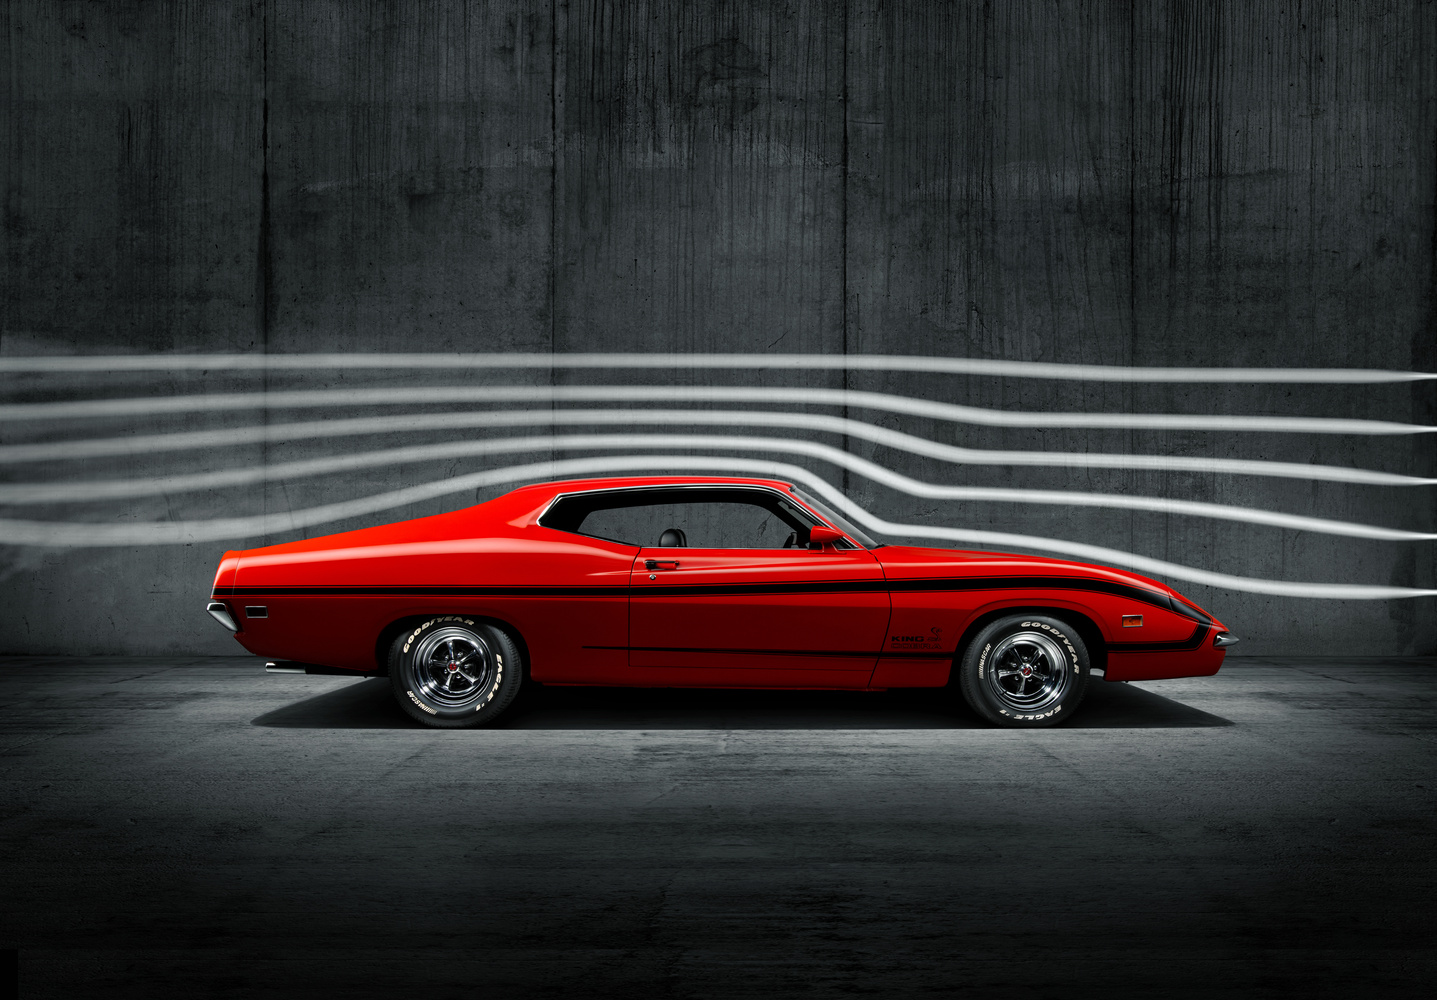 1970 Ford Torino King Cobra Prototype by Dominic Mann